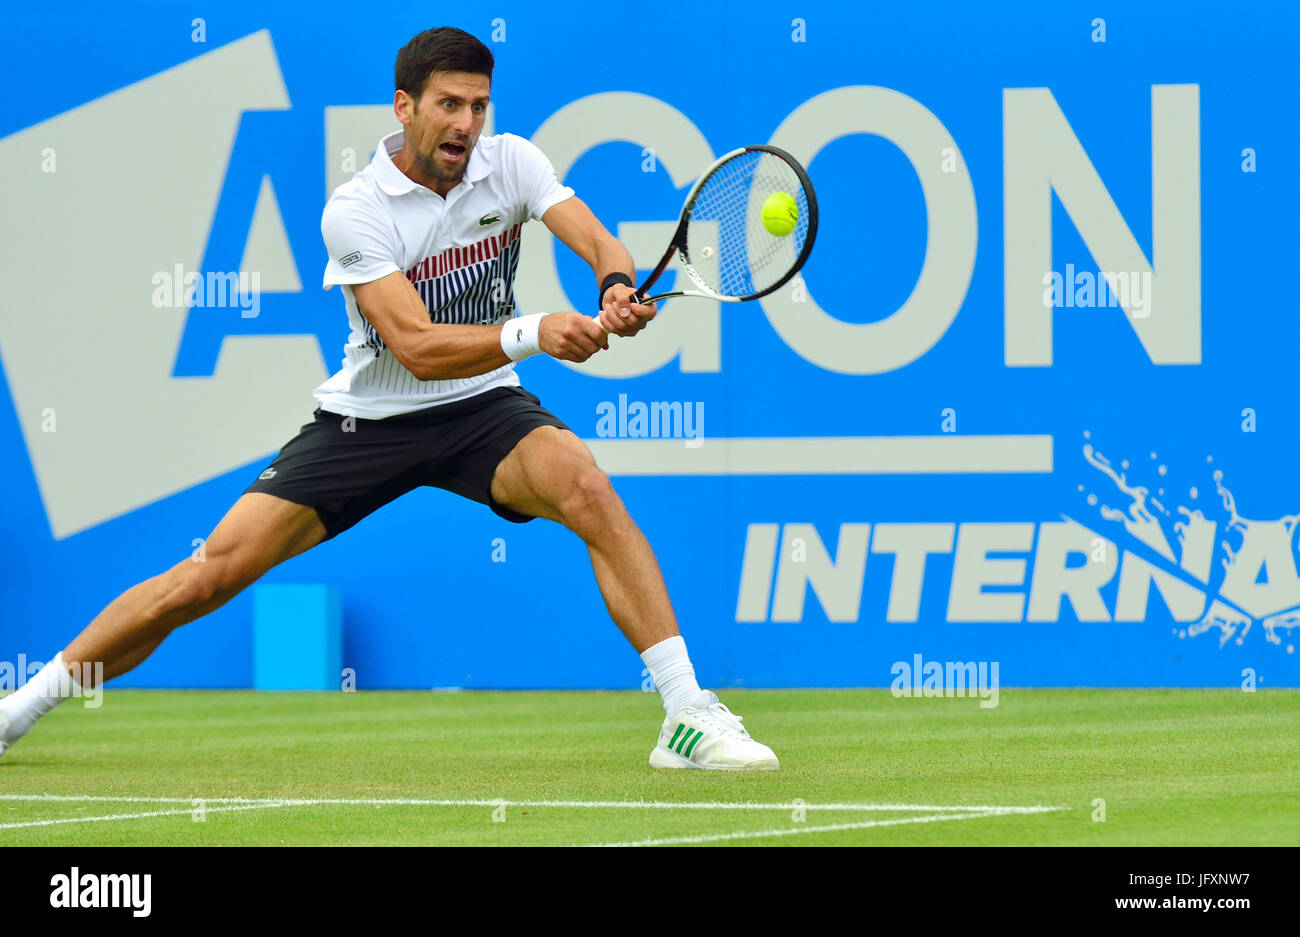 Novak Djokovic (Serbia) playing on centre court at Devonshire Park, Eastbourne, during the Aegon International 2017 - Stock Image